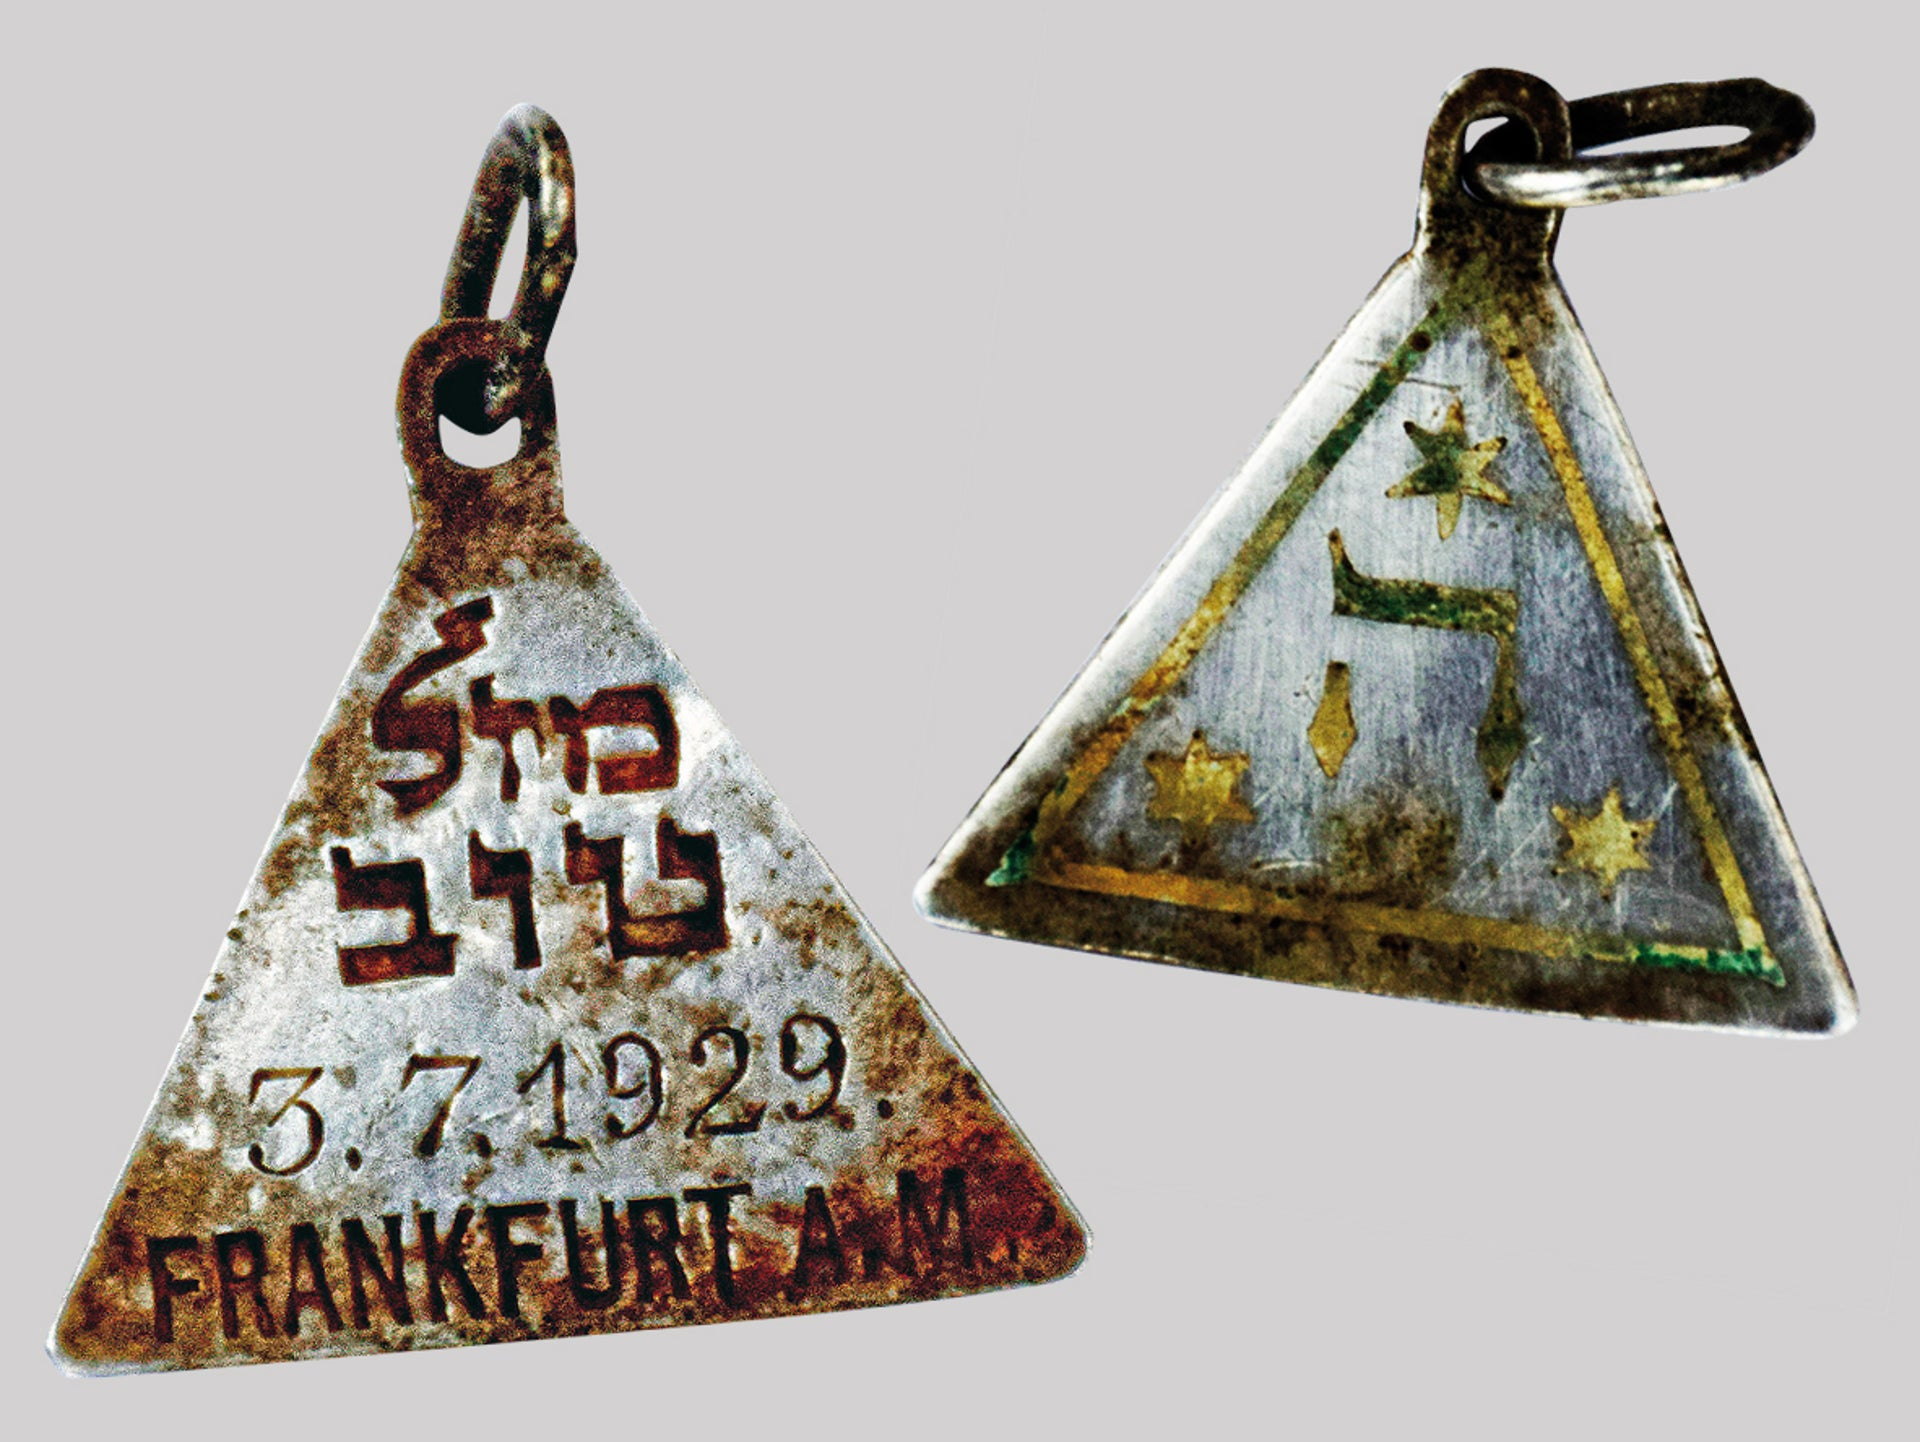 That pendant that's believed to have belonged to Karolina Cohn.